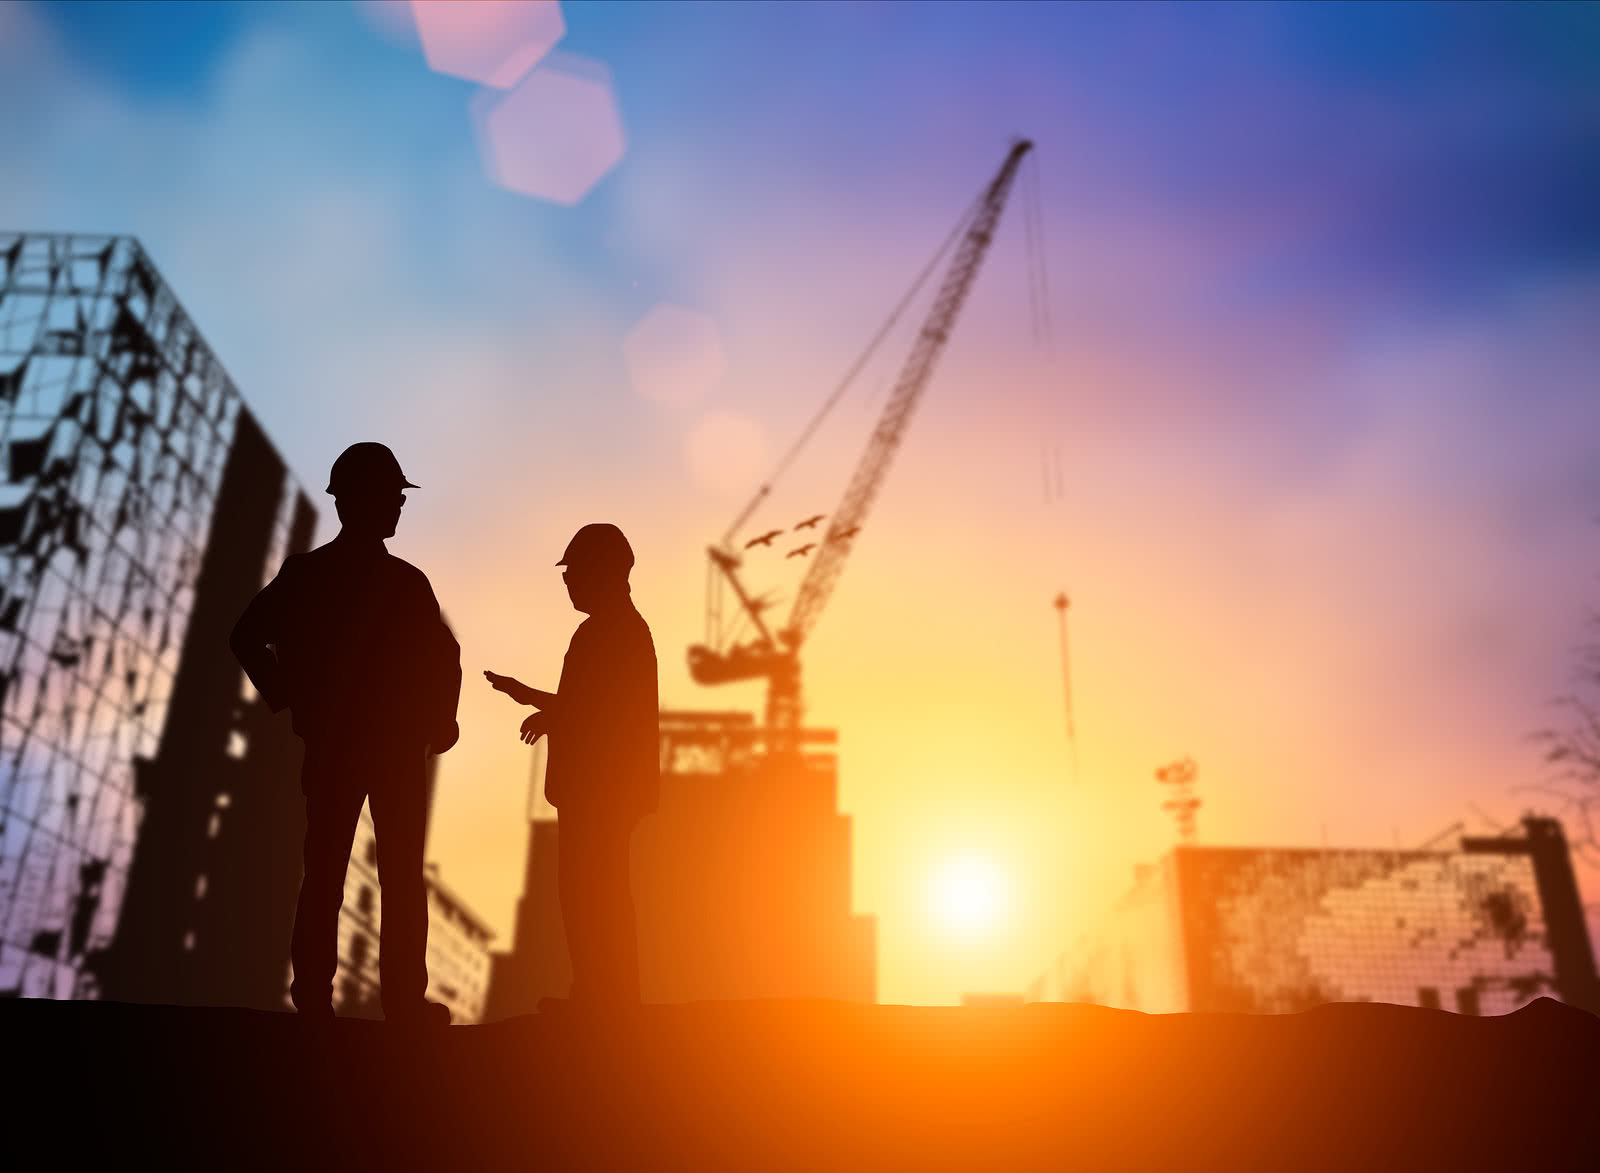 Two construction workers stand in front of a crane with sunset background